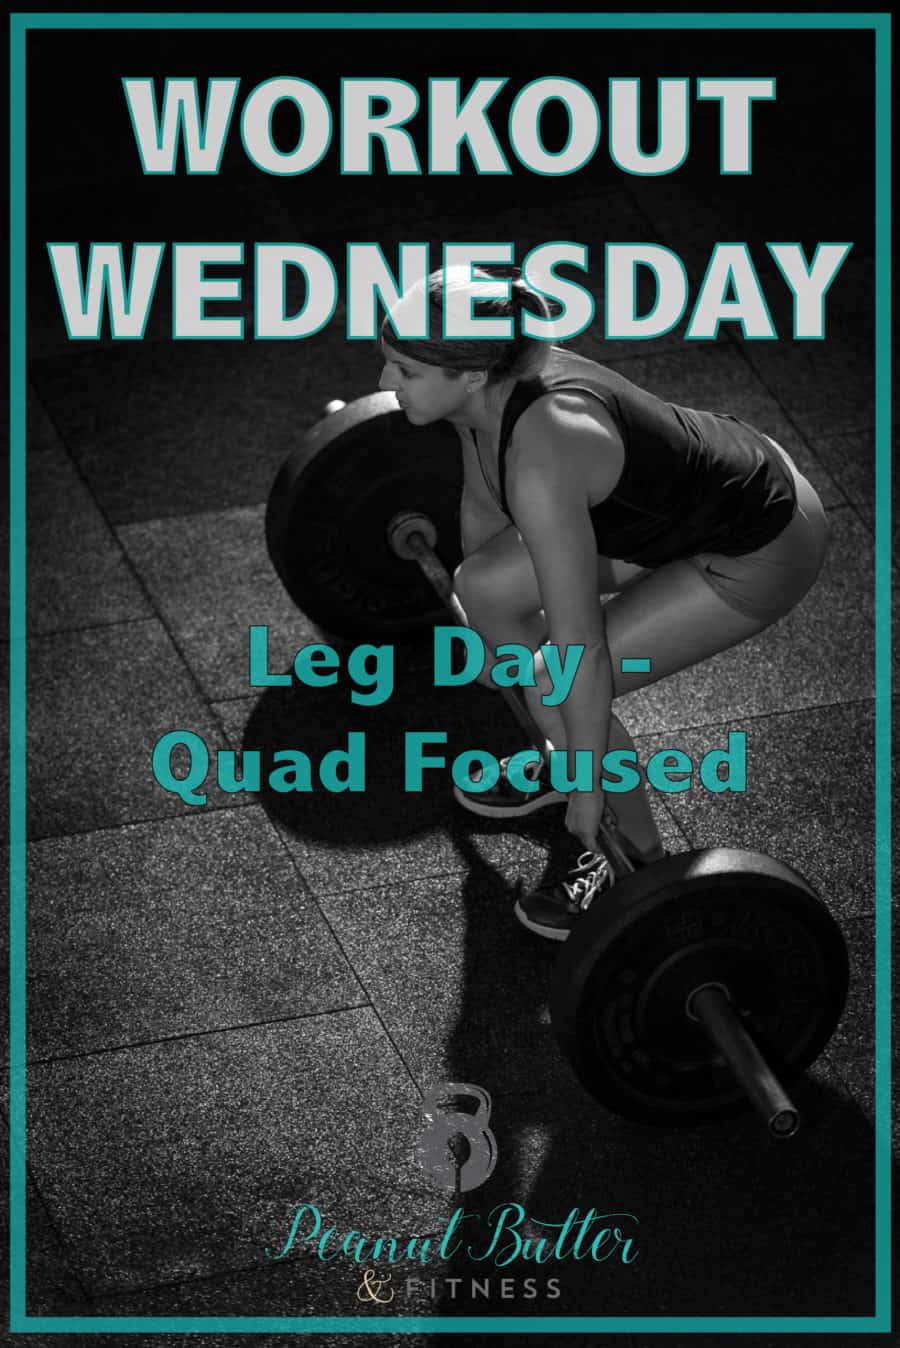 workout wednesday - november17.jpg